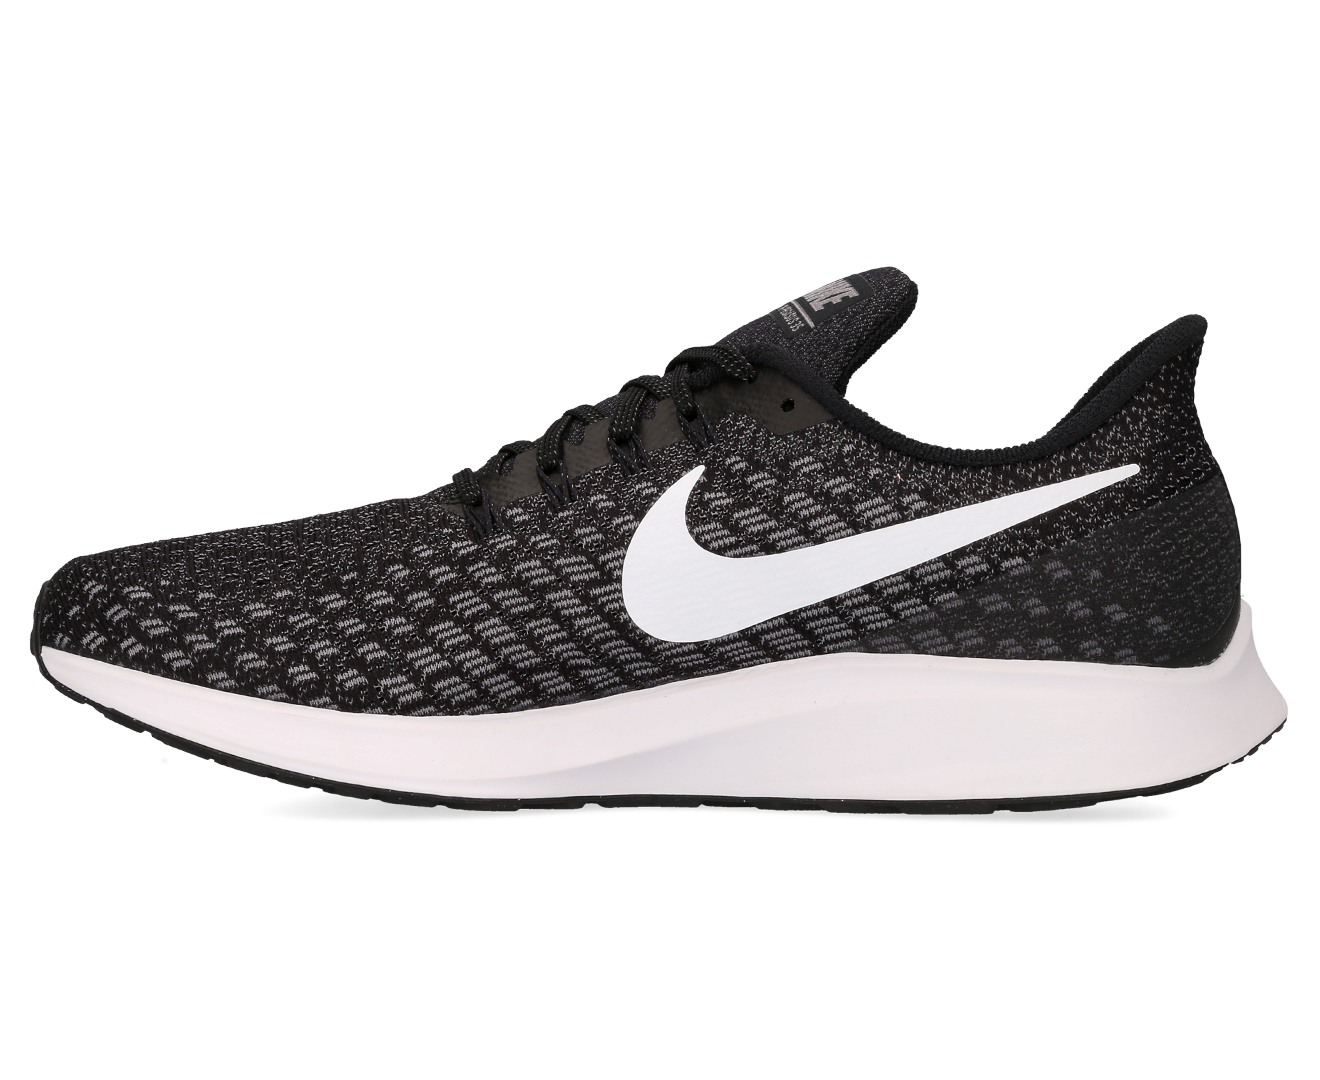 9d757a5f6e6f Nike Men s Air Zoom Pegasus 35 Shoe - Black Gunsmoke Oil Grey White ...